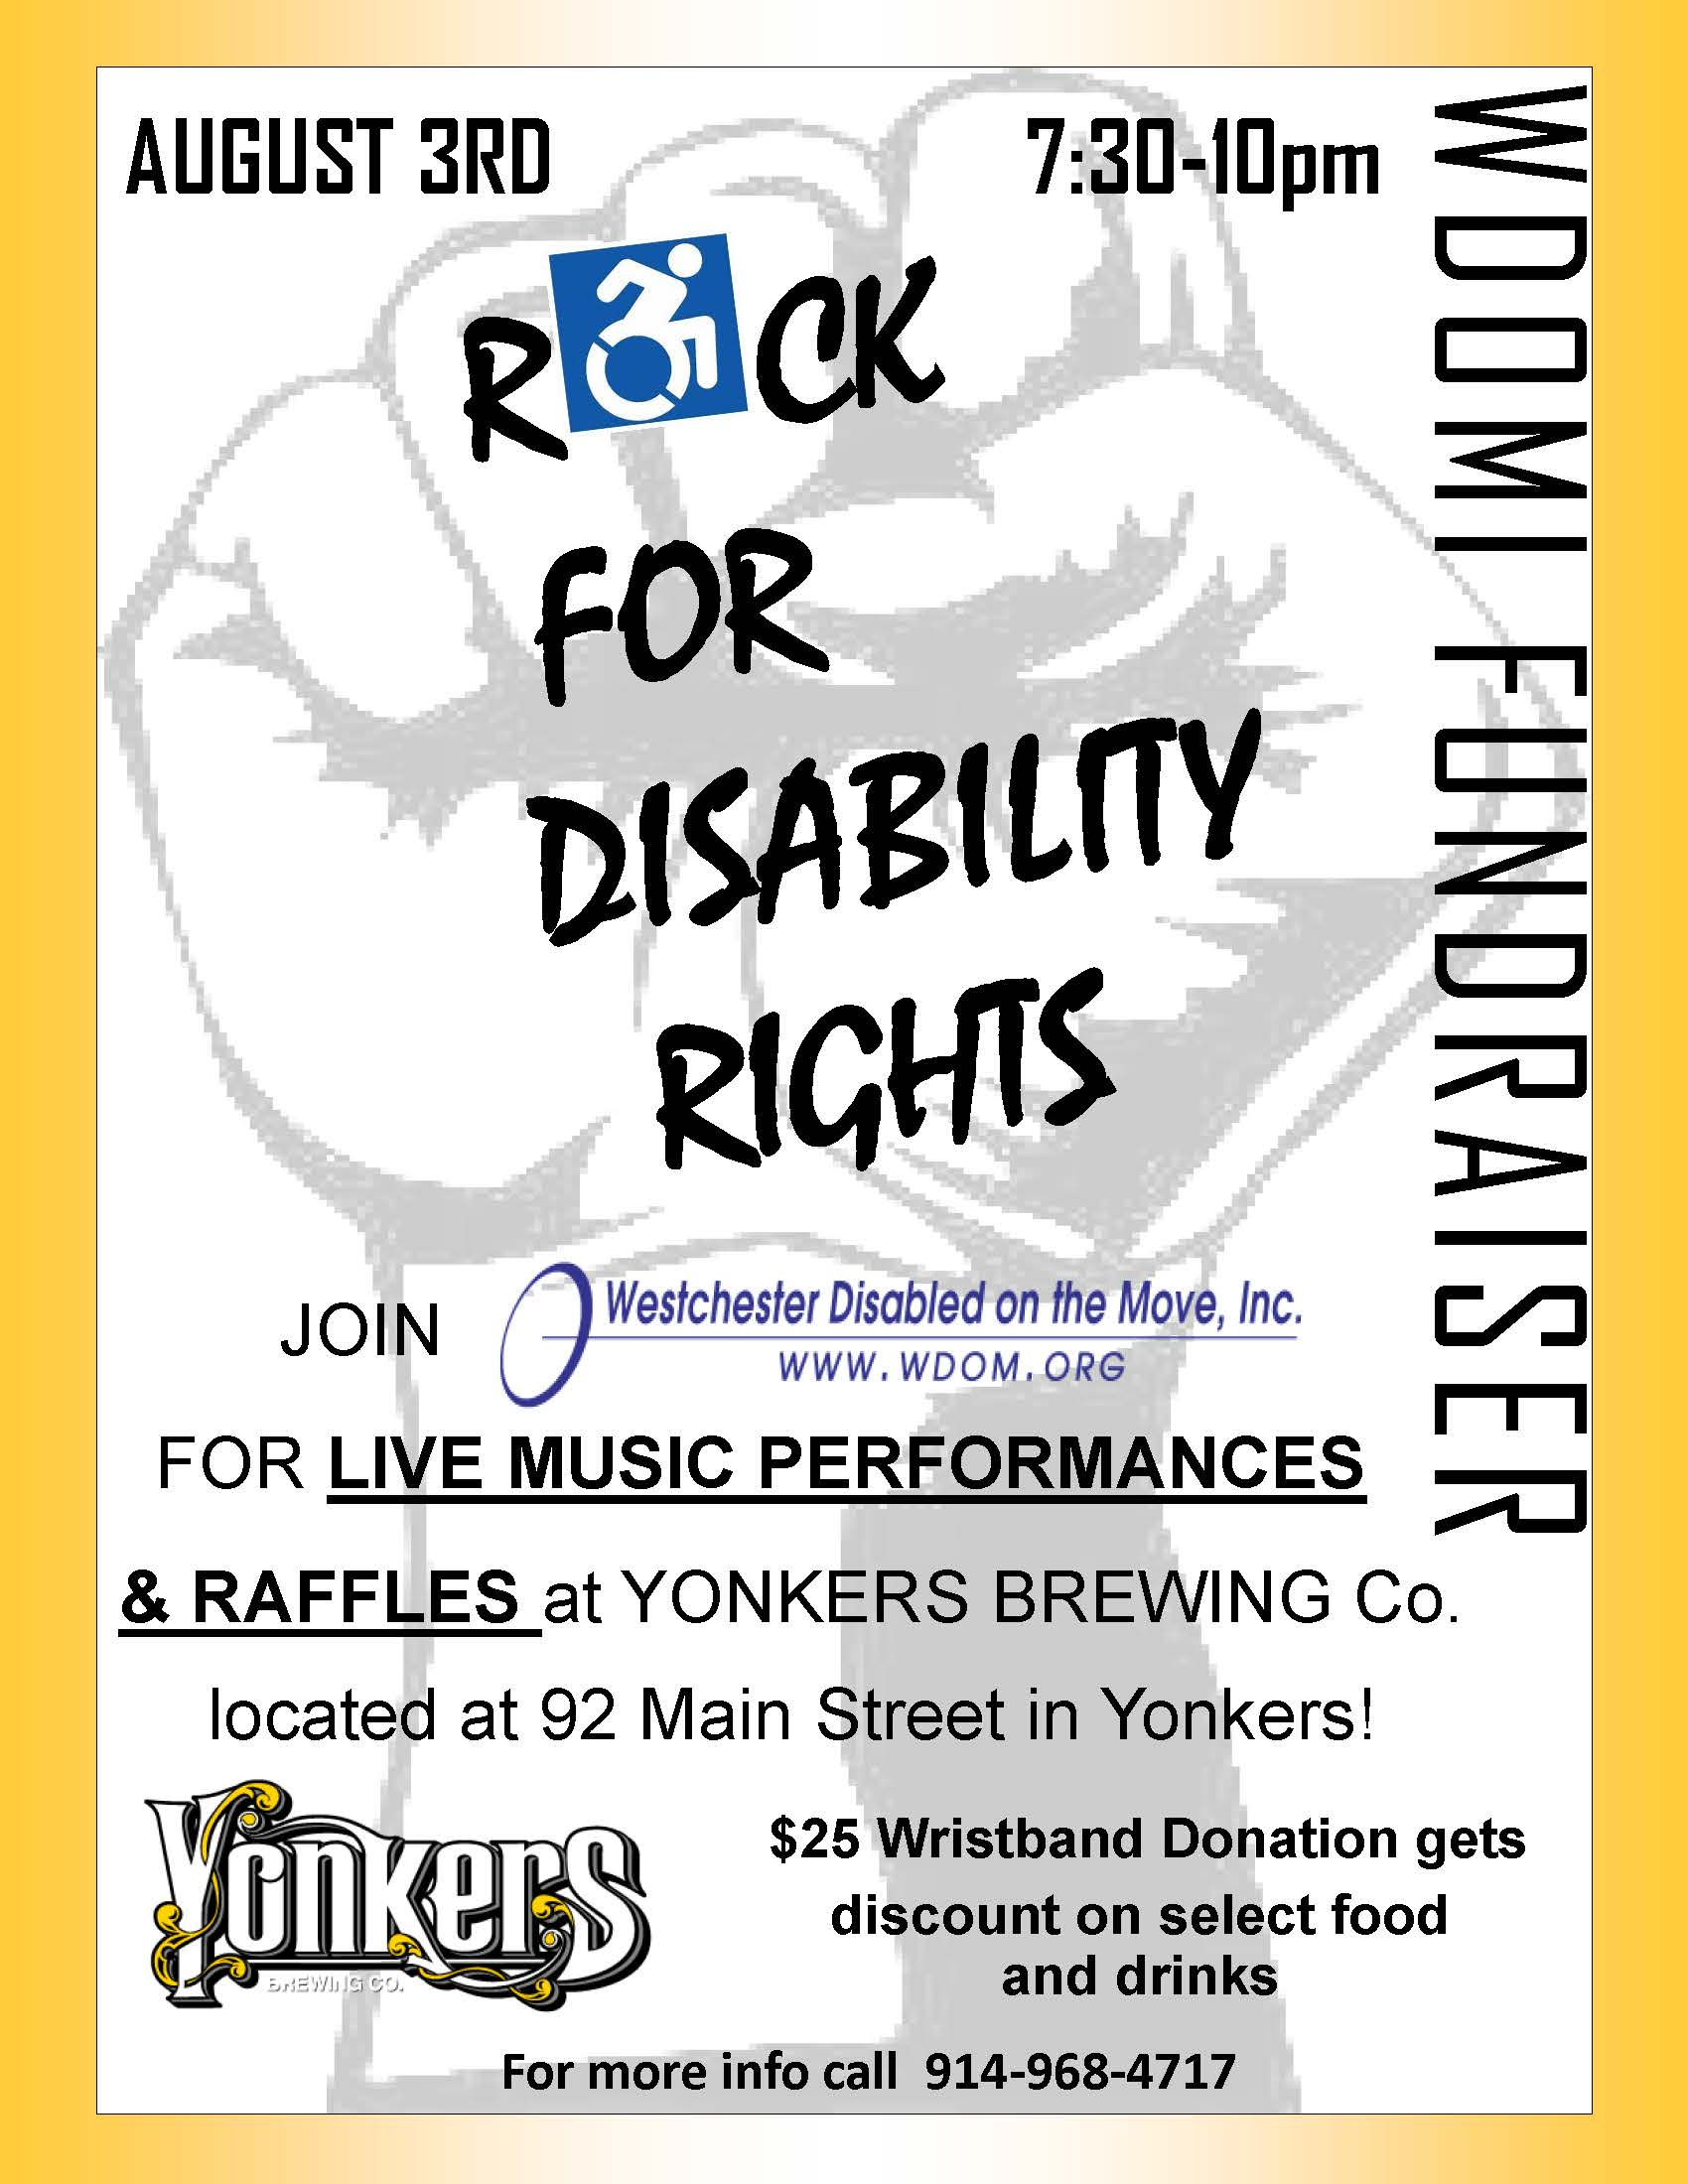 rock for disability rights fundraiser wdomi